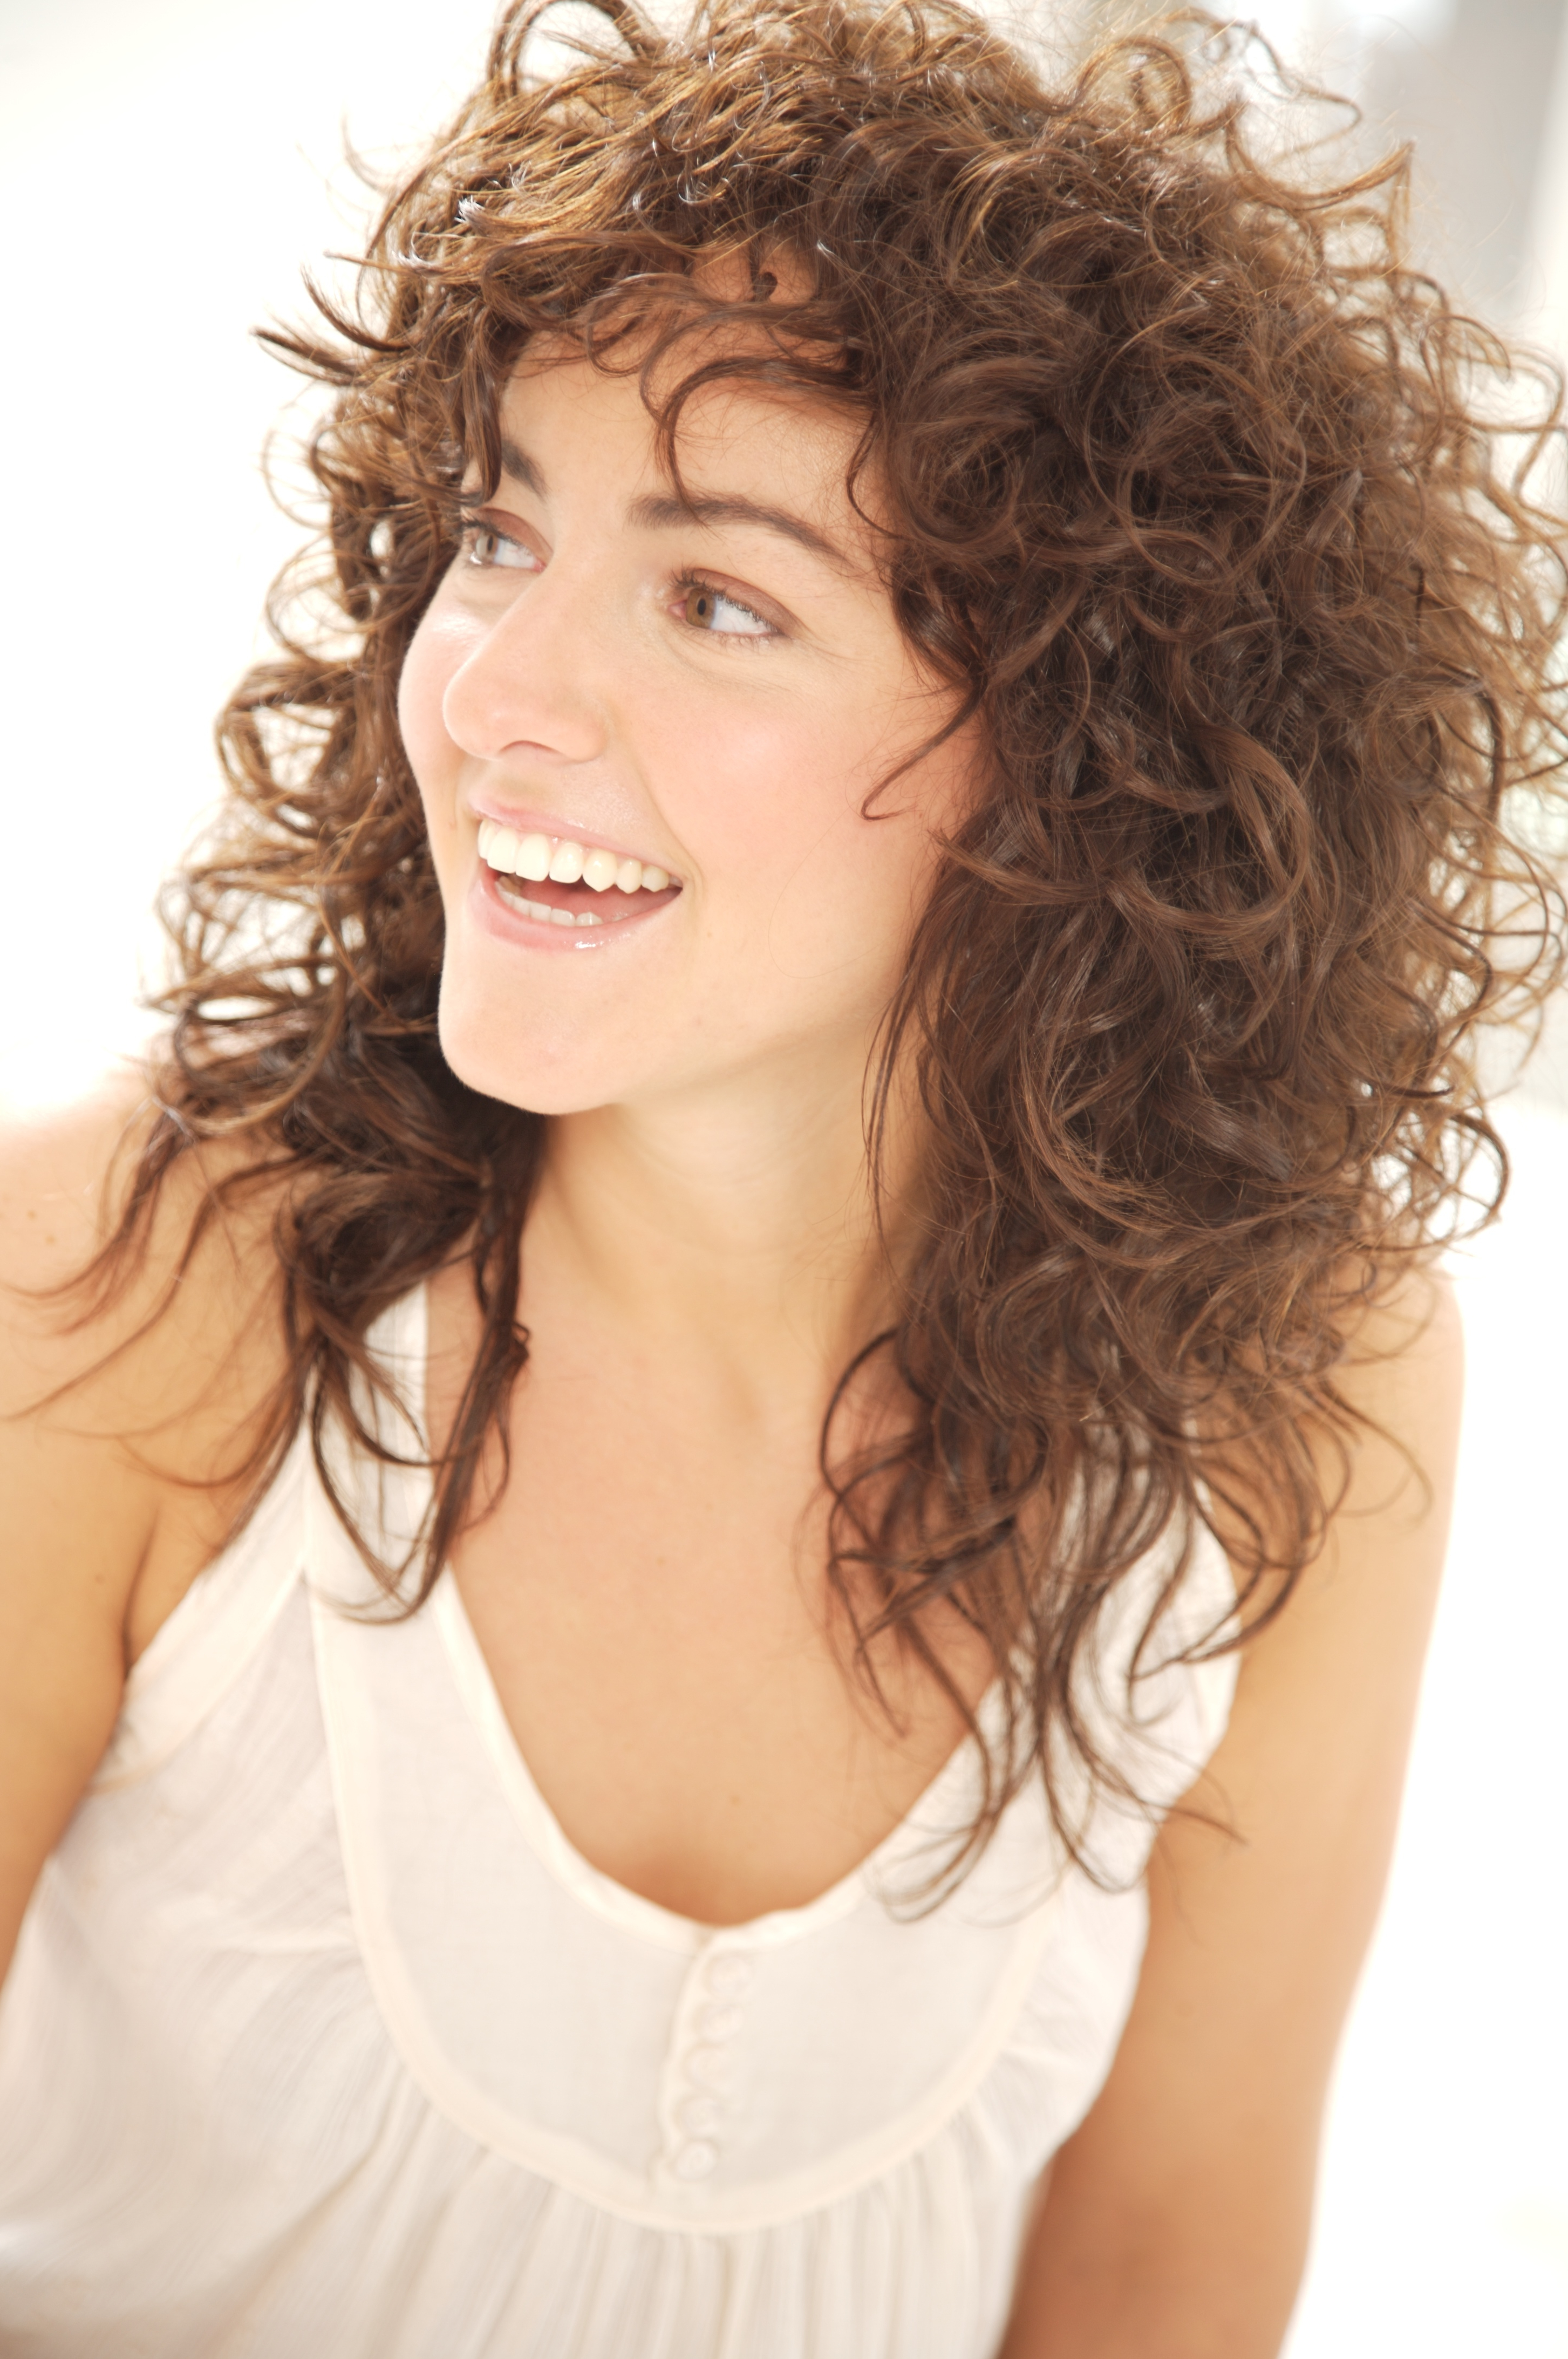 Hair Cuts : Naturally Curly Haircuts Short For Round Faces And Hair Regarding Fashionable Medium Haircuts For Naturally Curly Hair And Round Face (View 11 of 20)